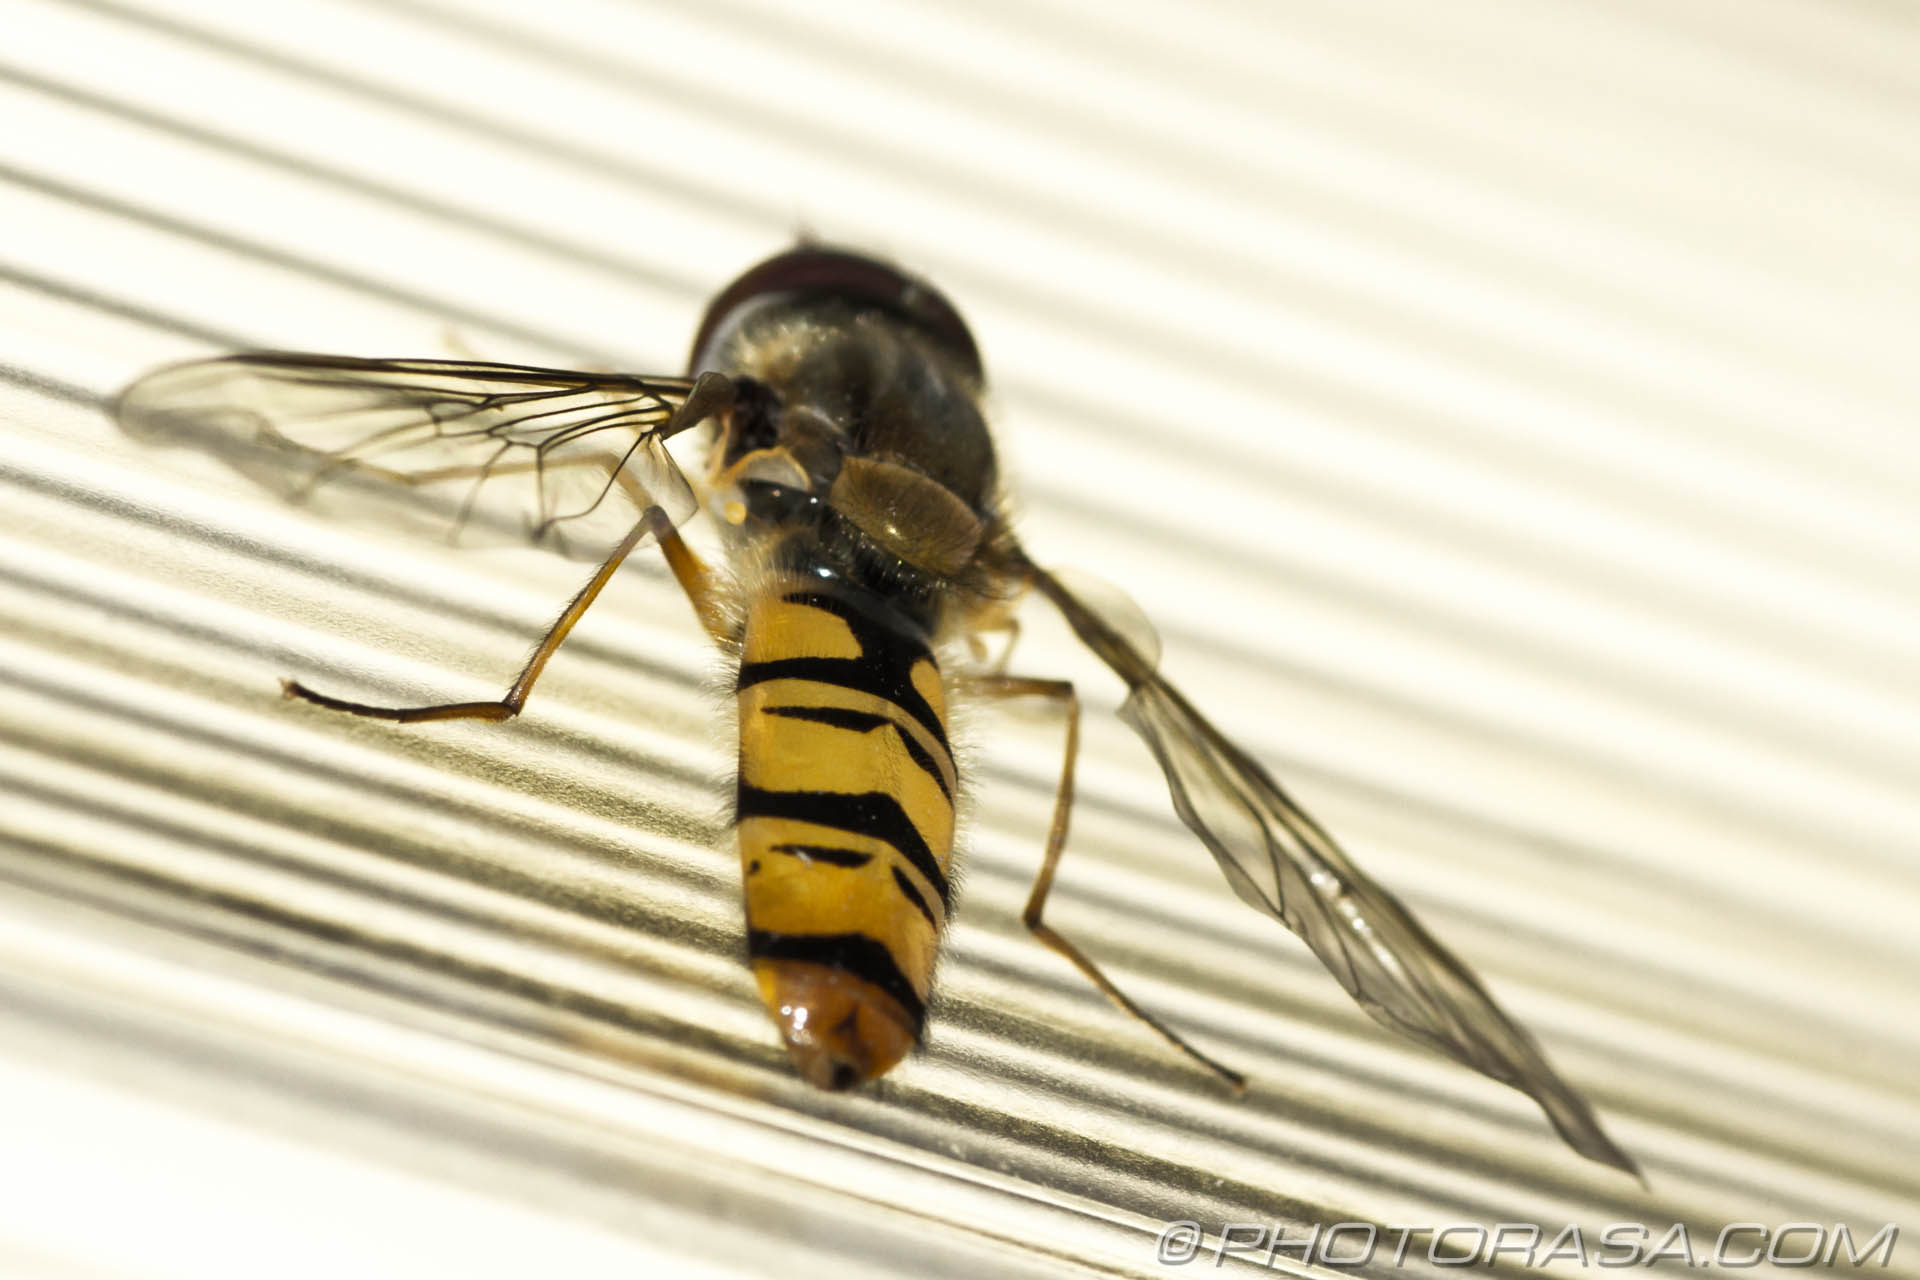 http://photorasa.com/hoverfly-light/hoverfly-yellow-and-black-abdomen/